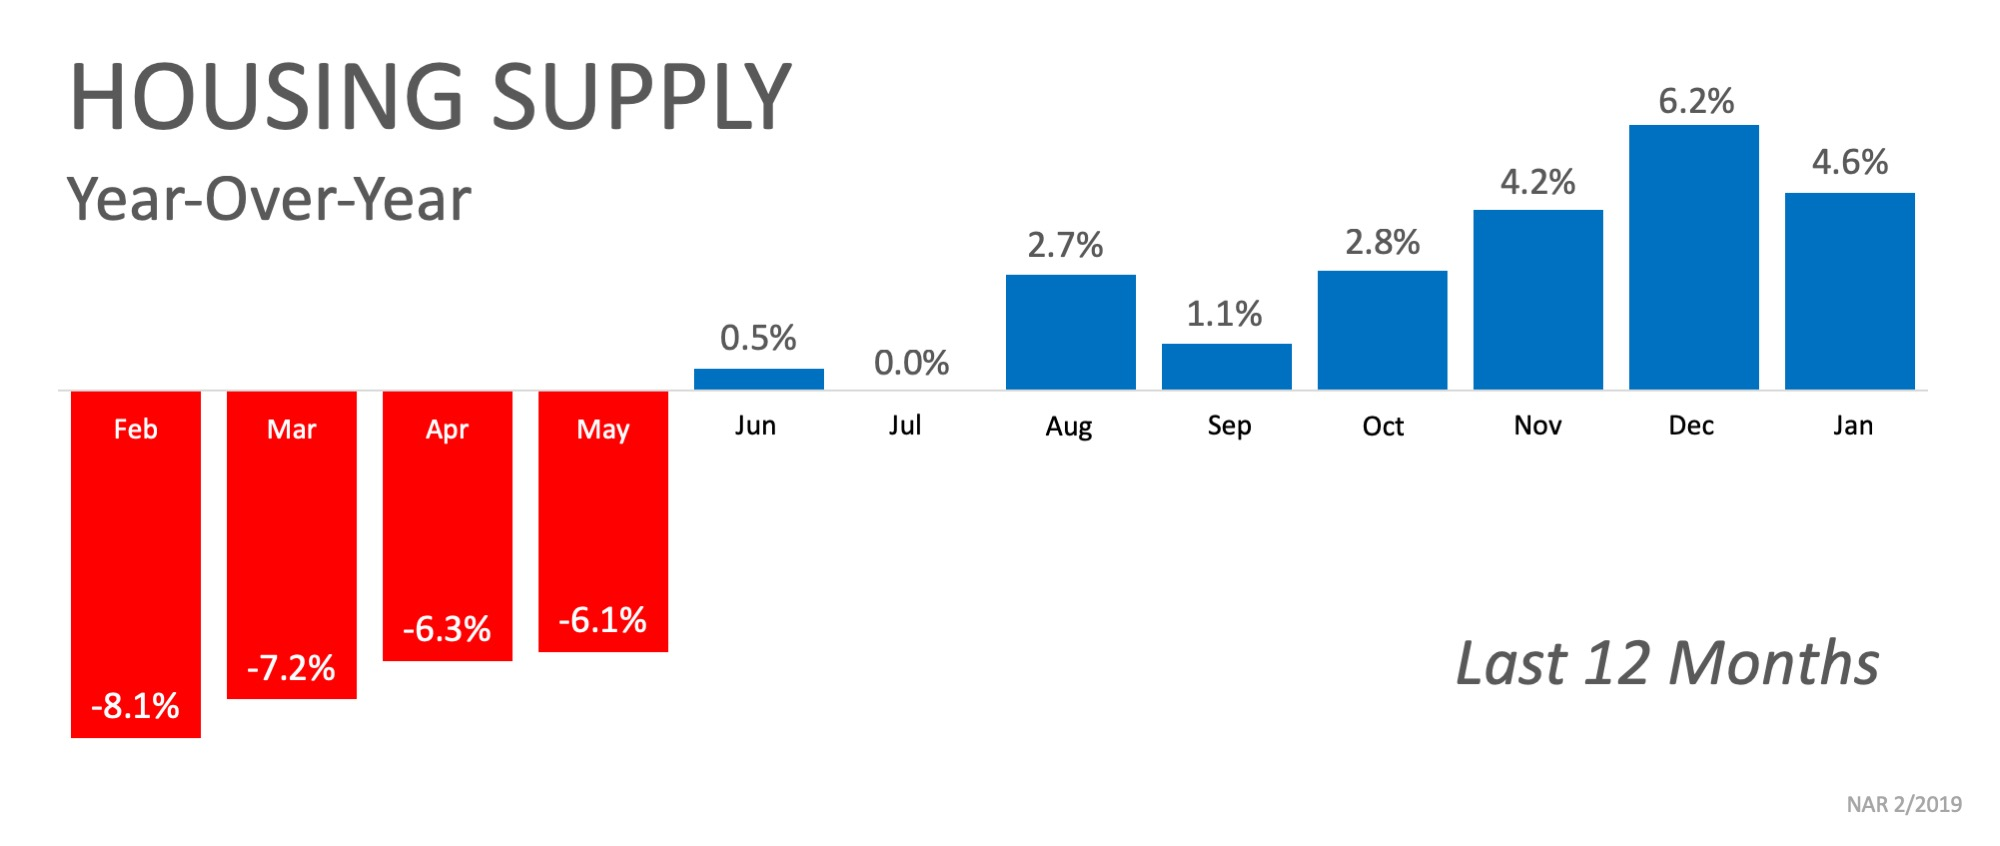 Housing supply nationwide for the last 12 months influence bidding wars in real estate